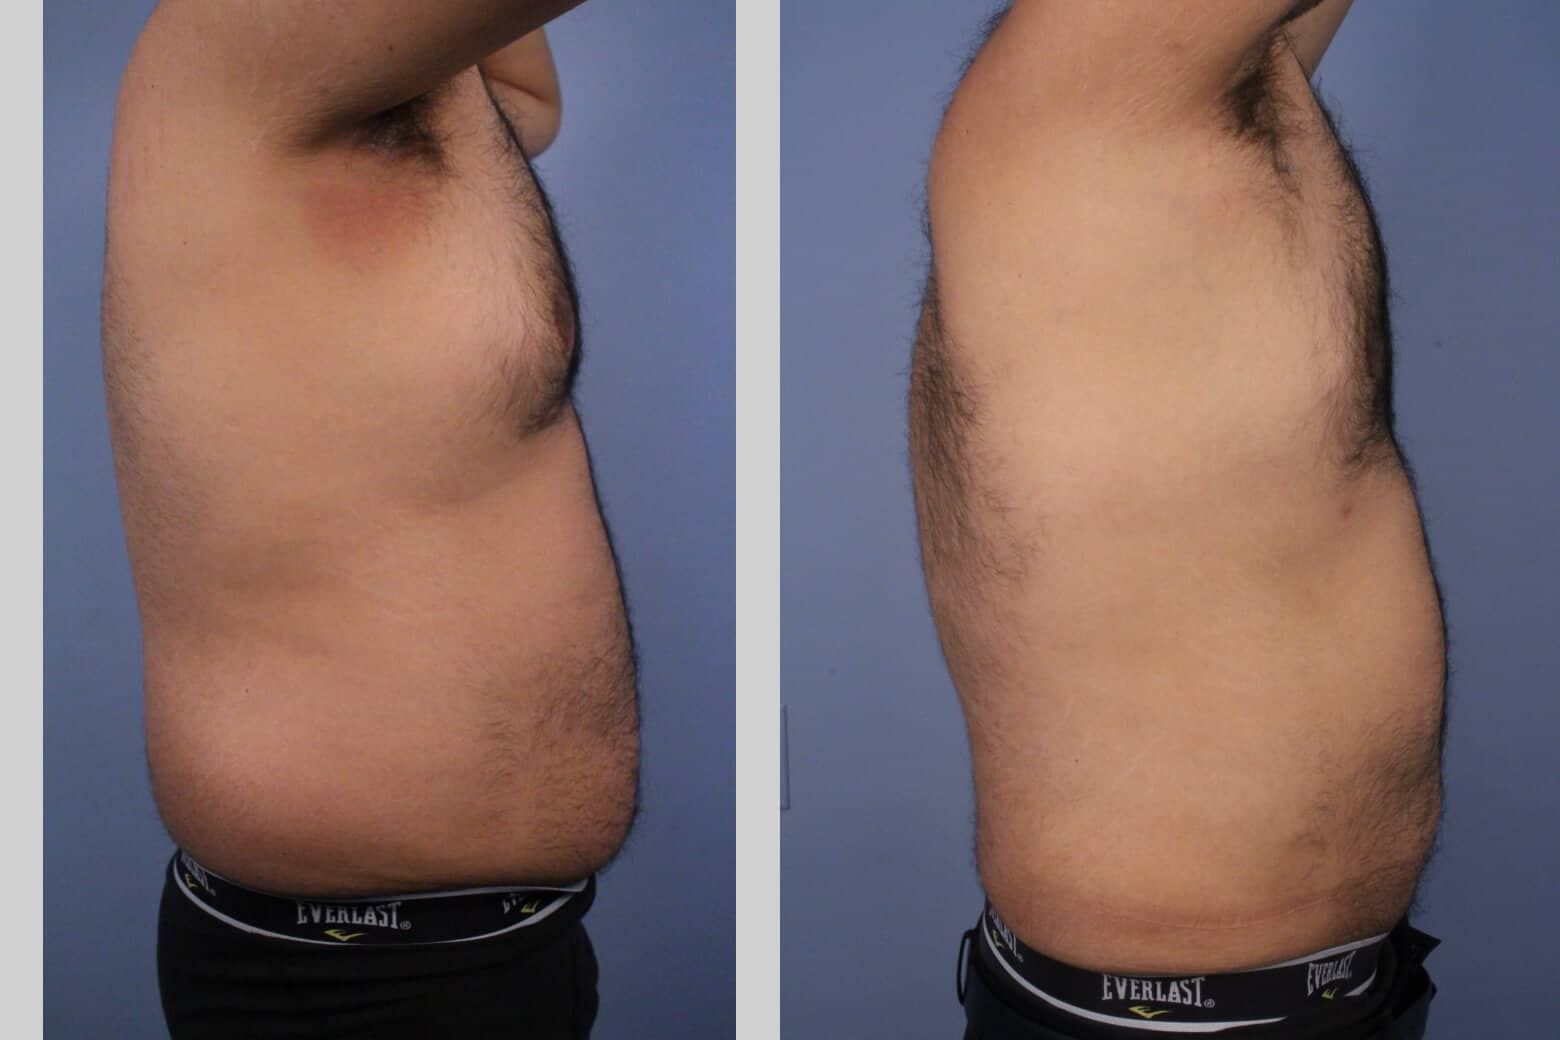 Male Tummy Tuck - Before and After Gallery - Patient Photo 47a